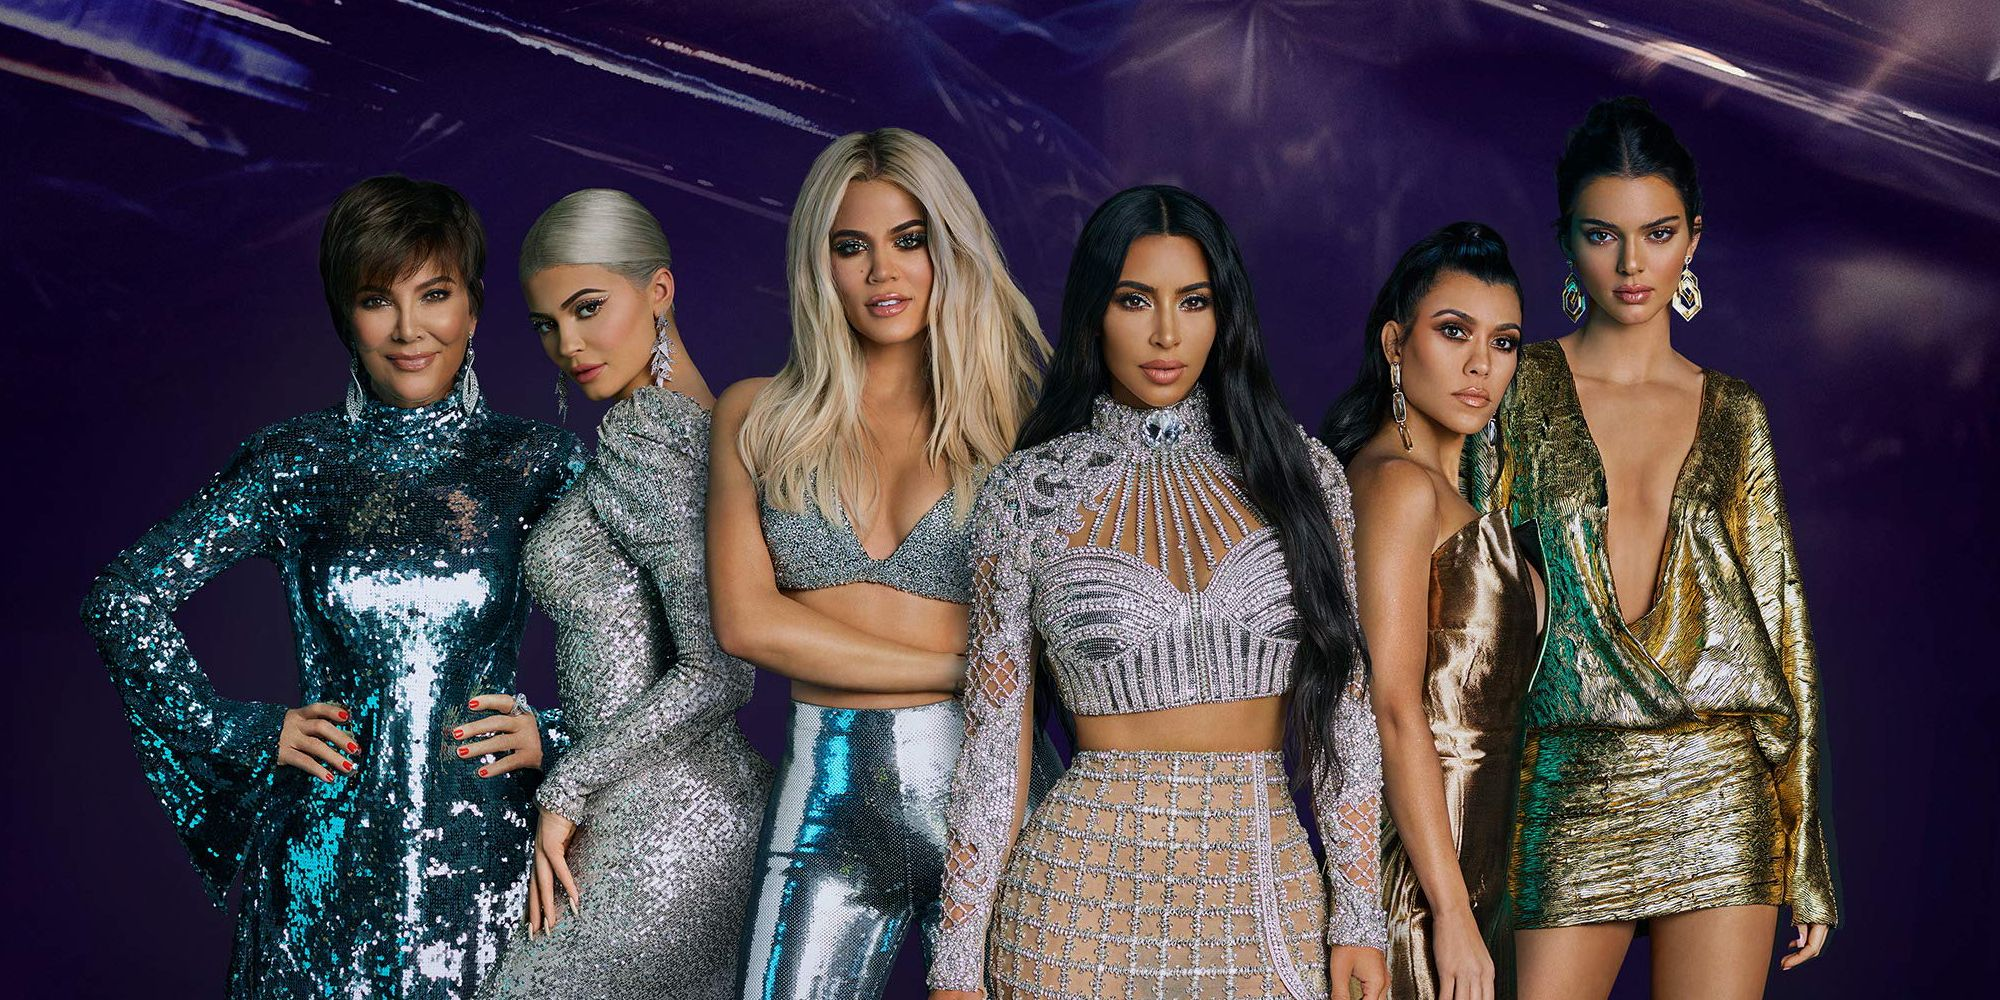 Kardashian-Jenner Family Members Who Will Likely Be On The Hulu Show (& Who Won't)